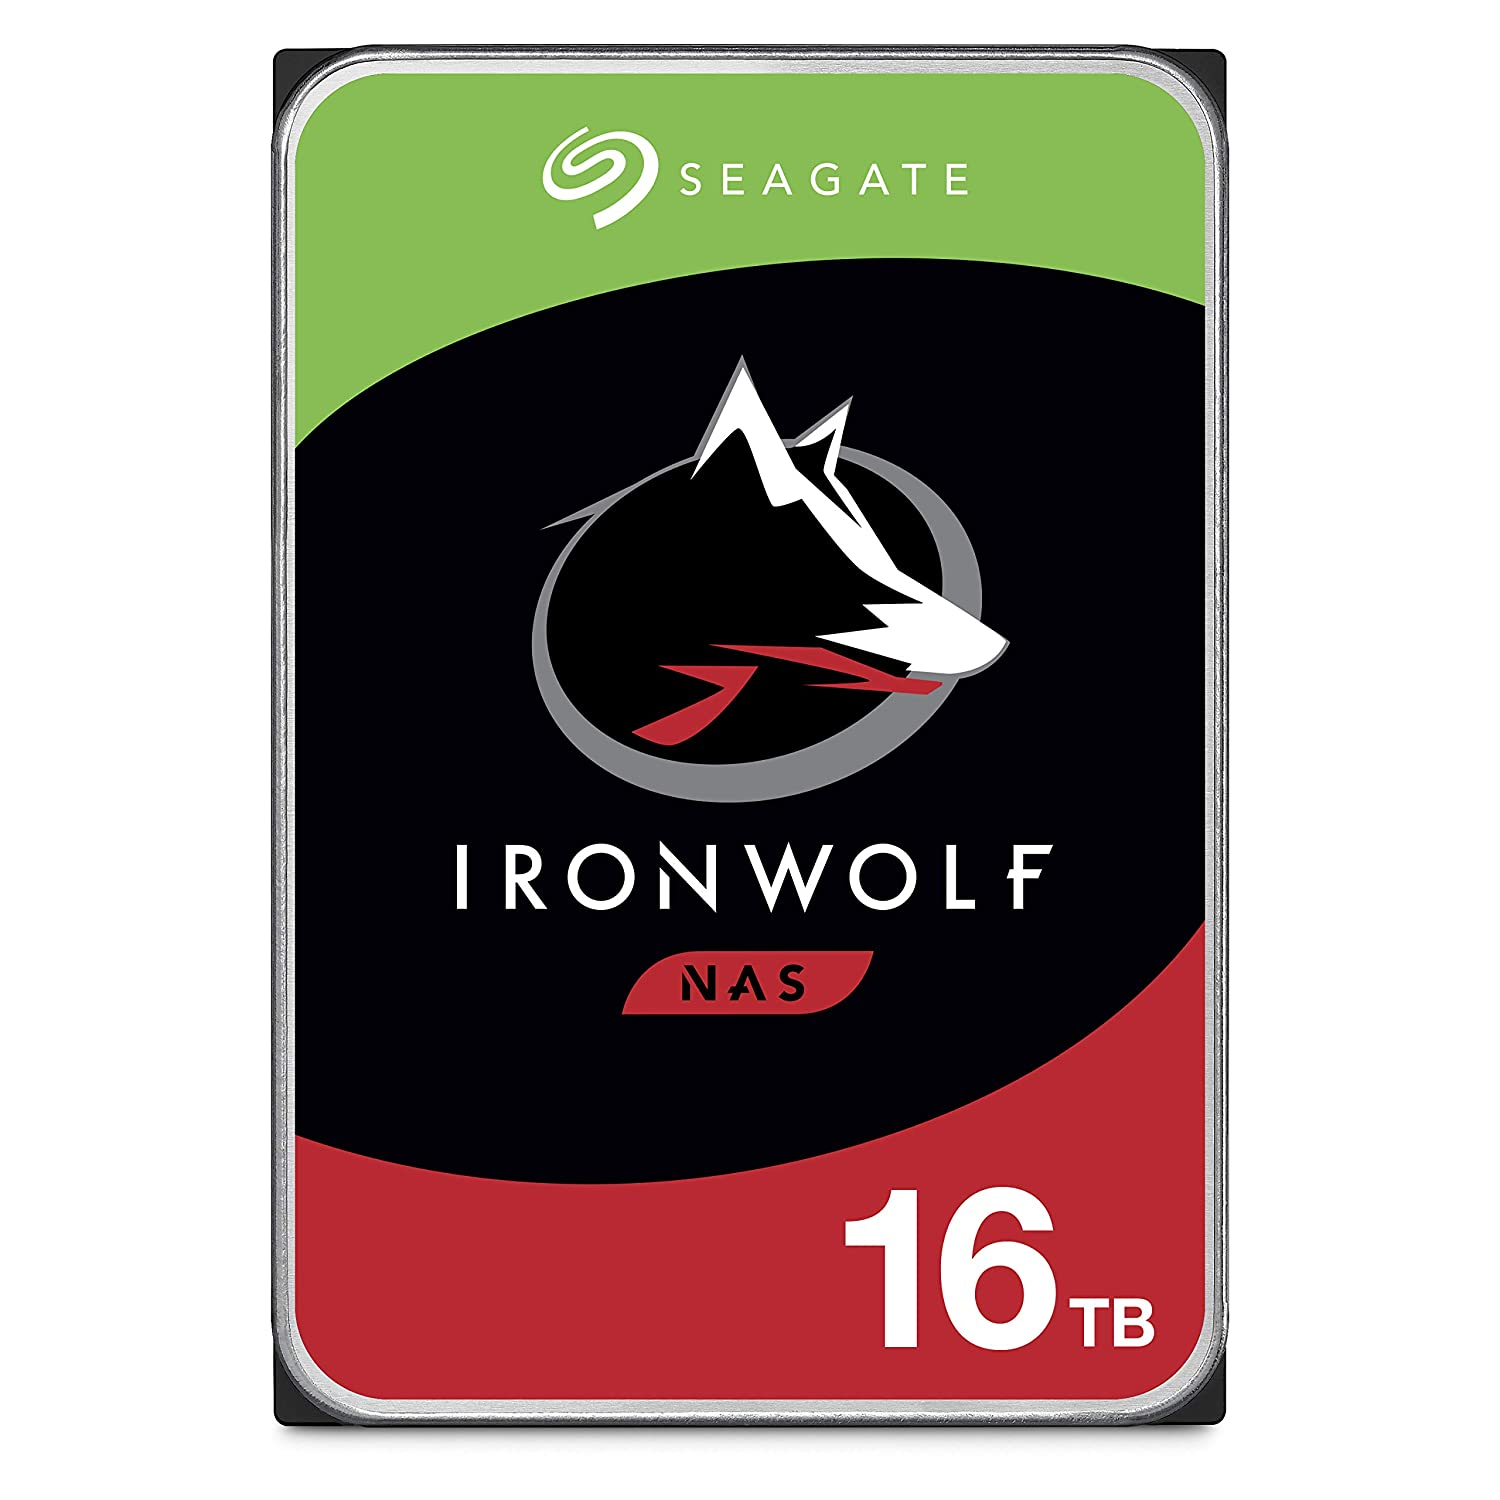 Seagate IronWolf 16TB NAS Internal Hard Drive HDD – 3.5 Inch SATA 6GB/S 7200 RPM 256MB Cache for Raid Network Attached Storage (ST16000VN001)